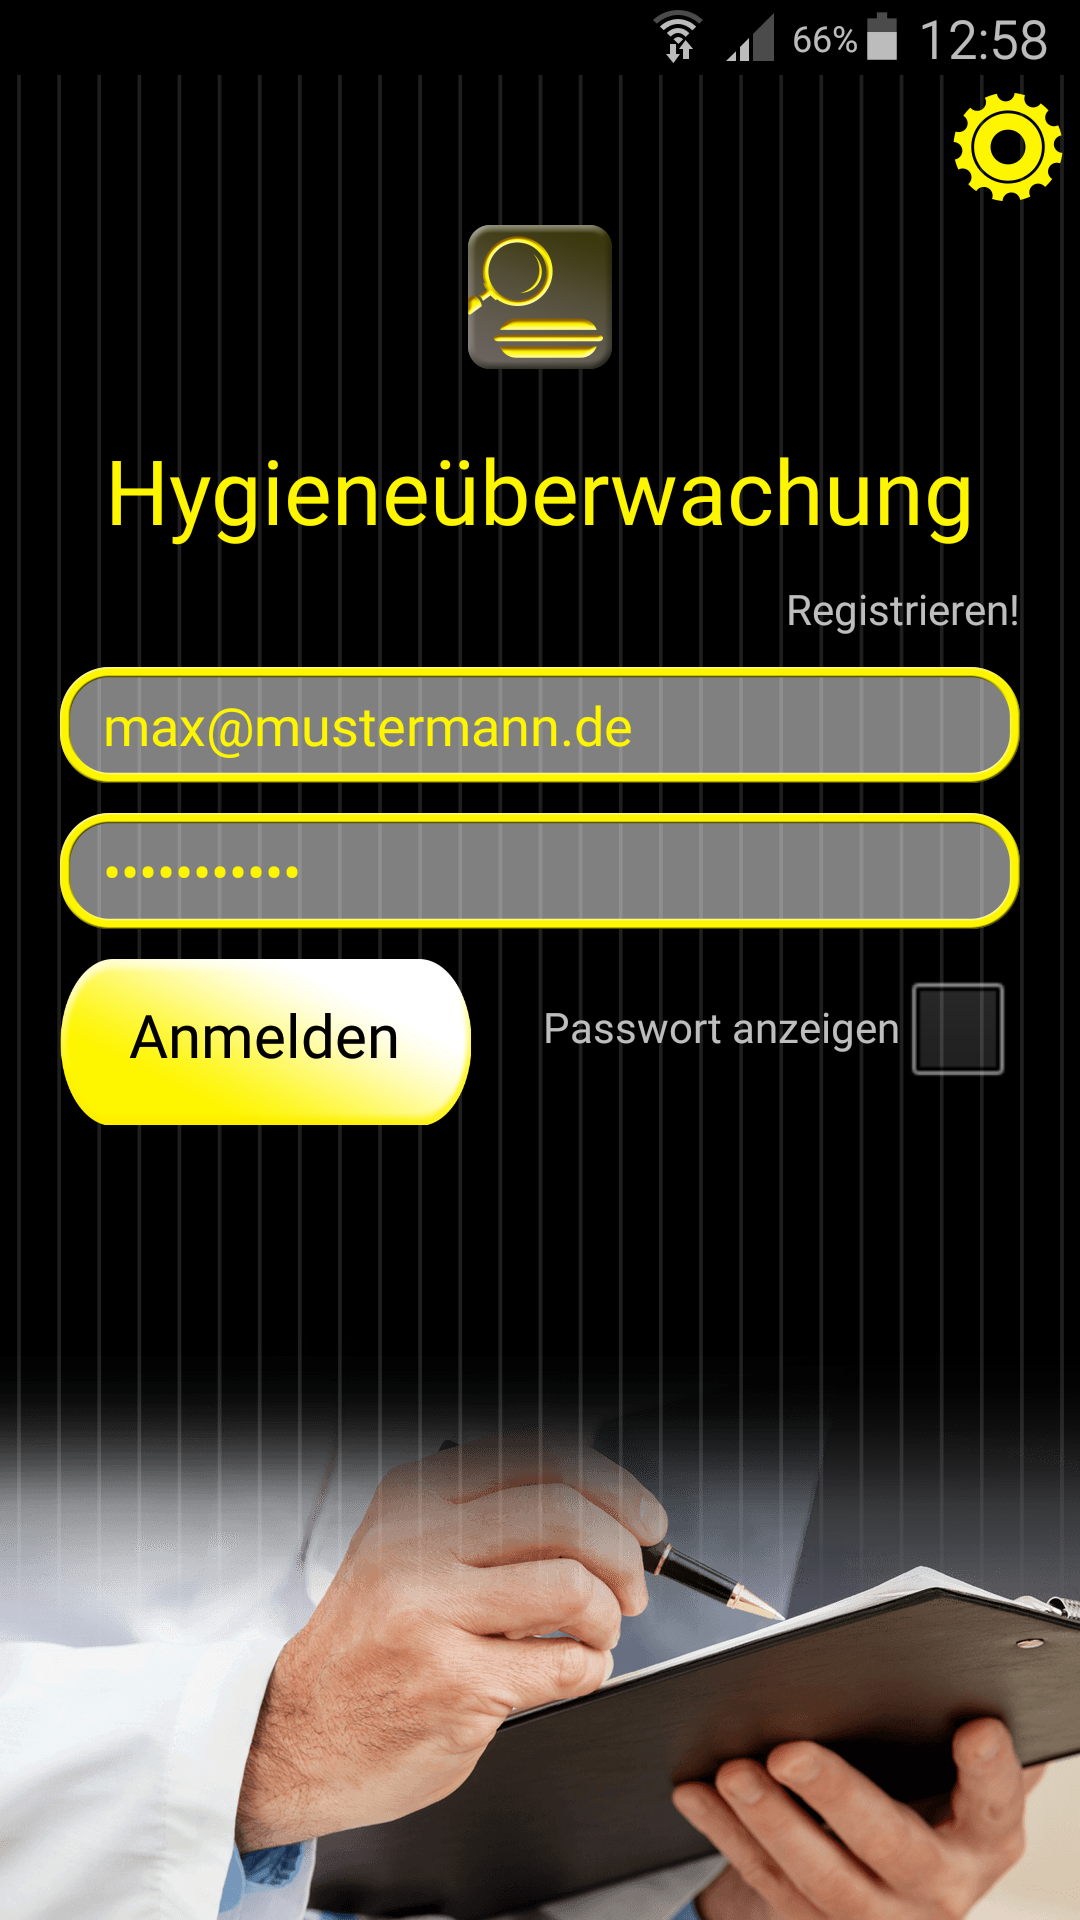 ginstr_app_foodServiceInspection_DE_1